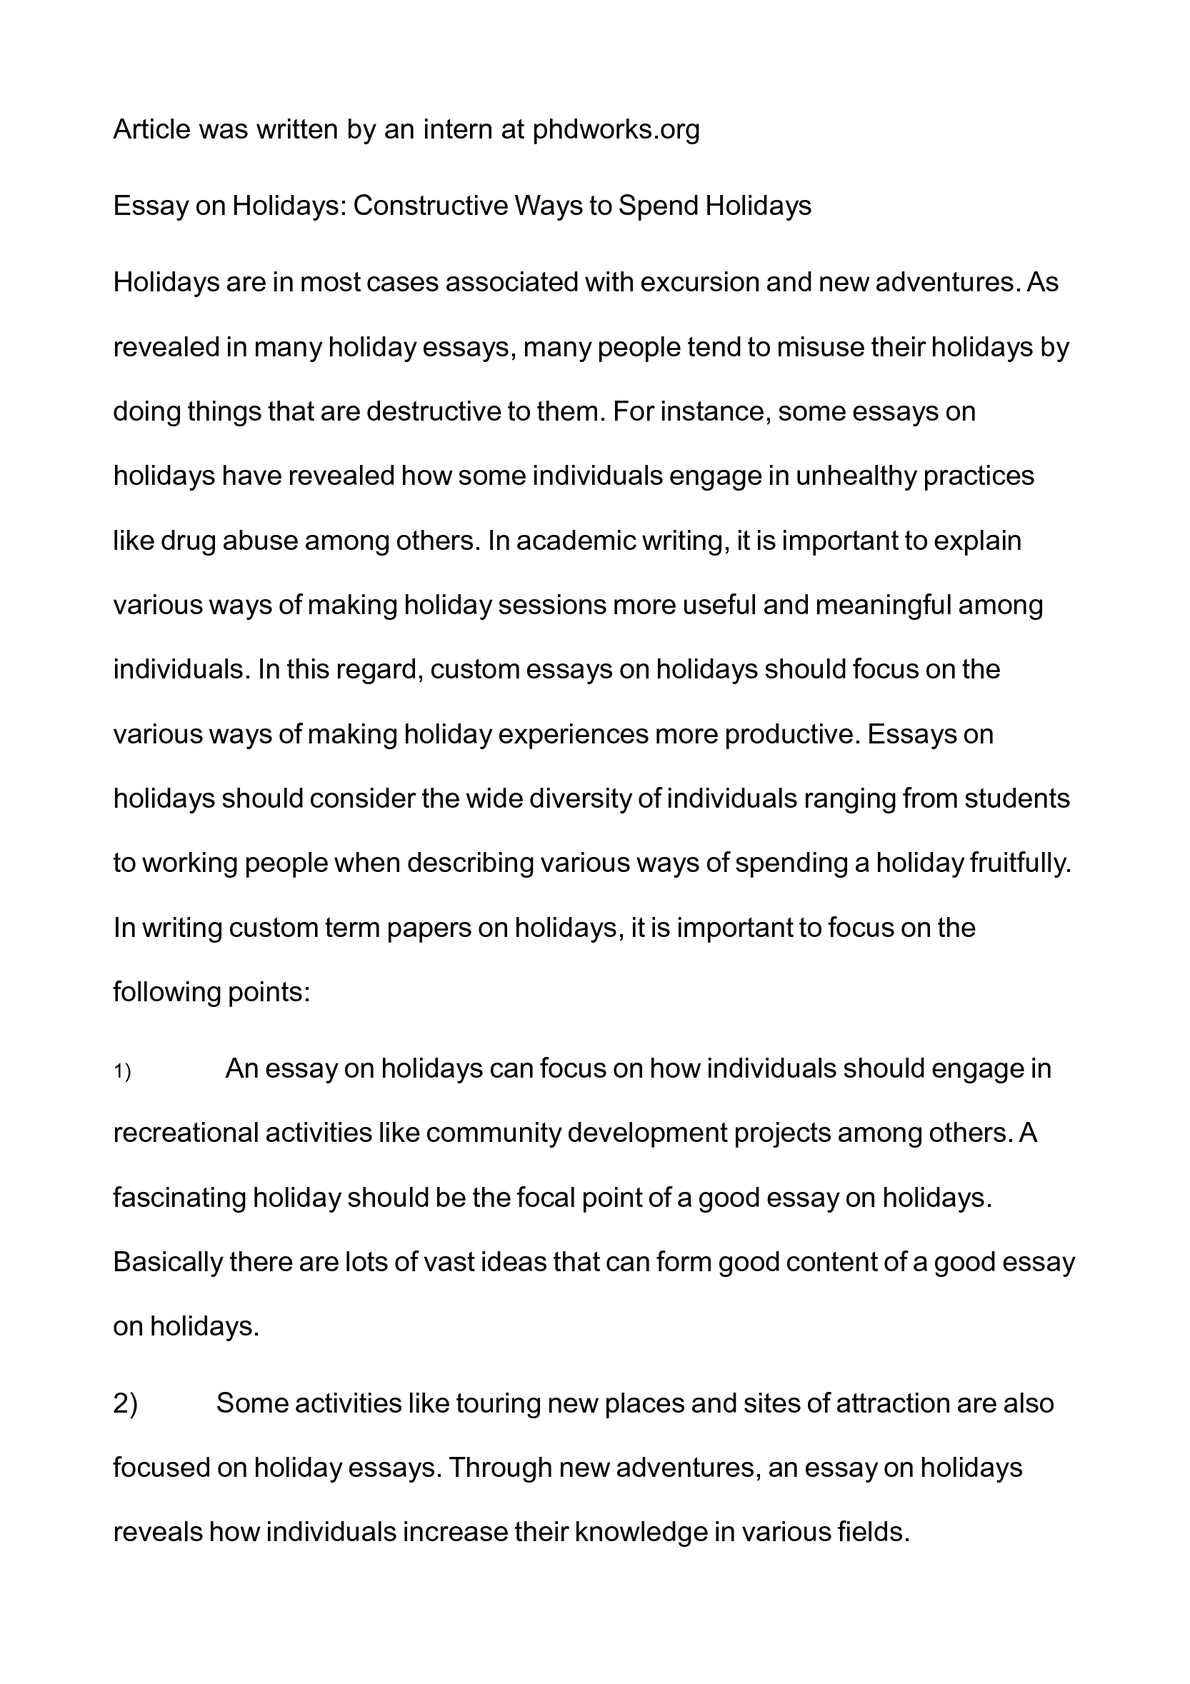 essay on holidays constructive ways to spend holidays